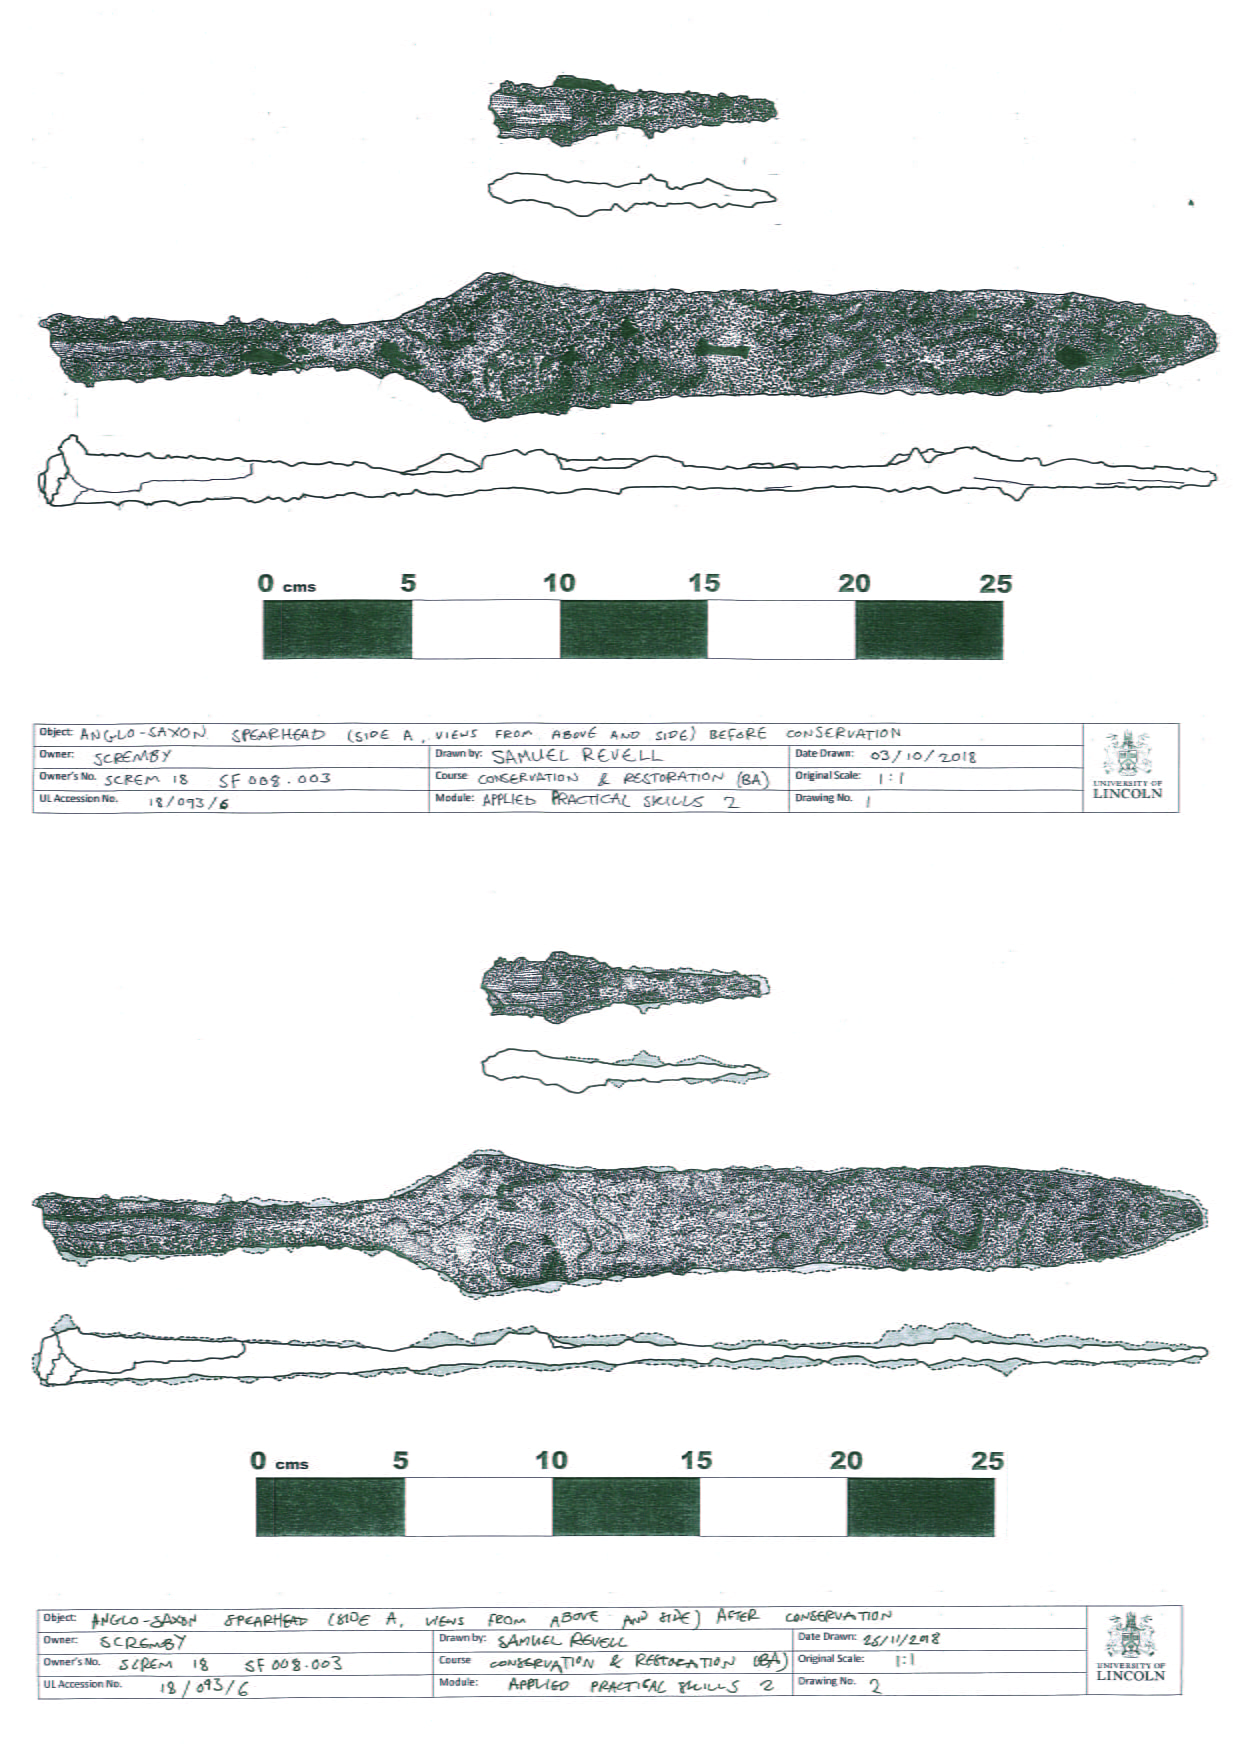 Technical drawings of a spearhead, showing surface texture and outline of the spearhead before and after conservation treatment.